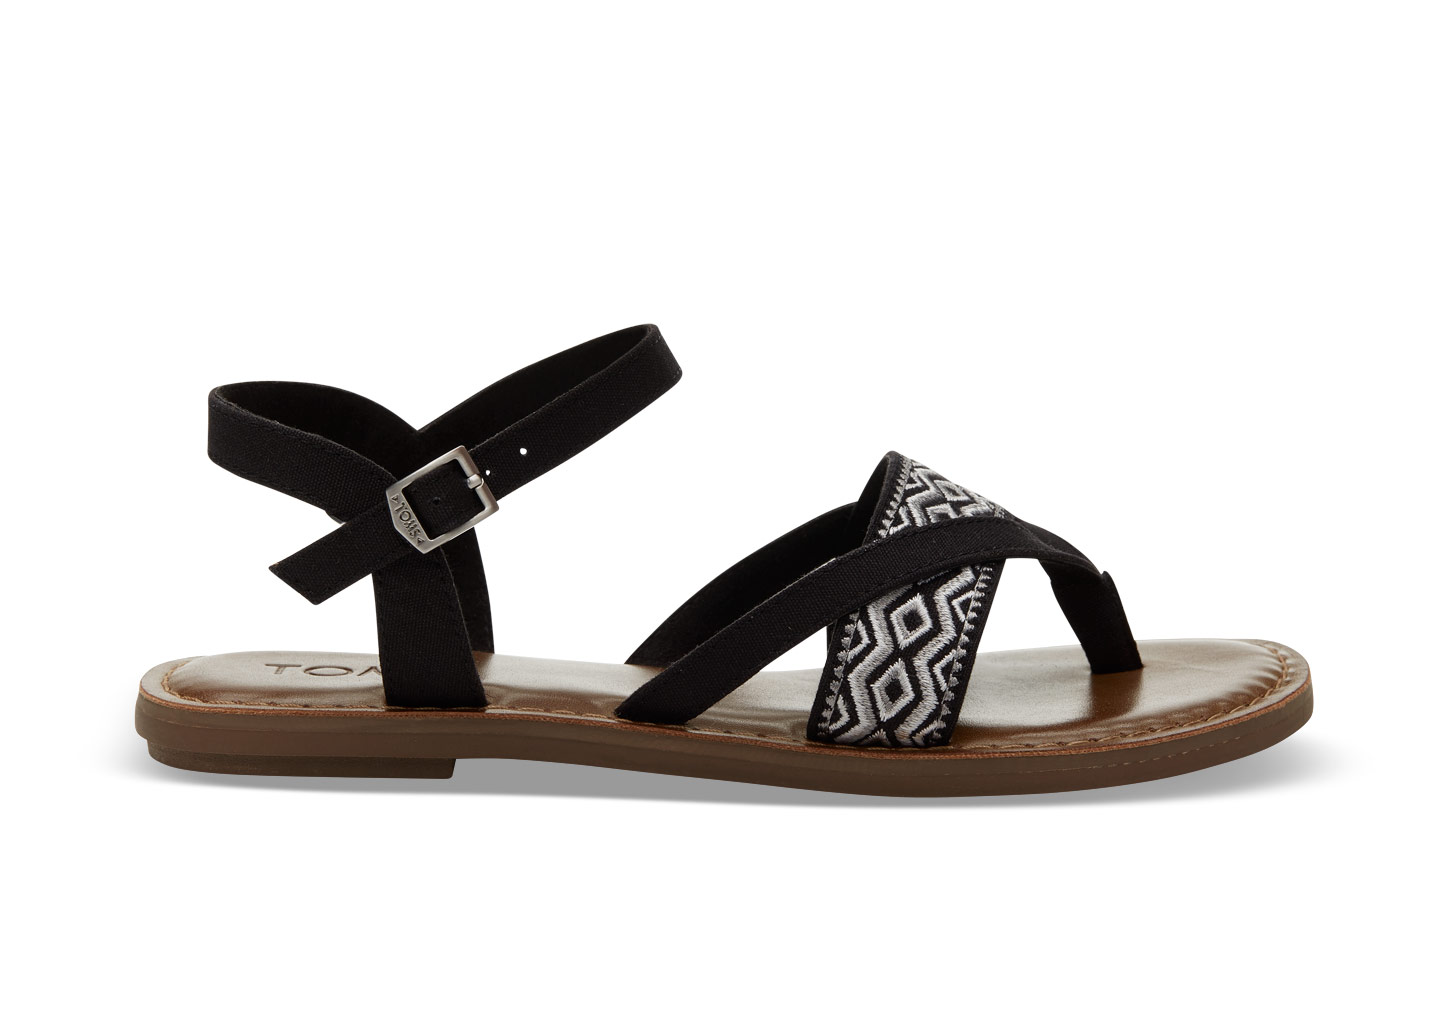 Black canvas embroidery sandals, rubber soles, $69.95